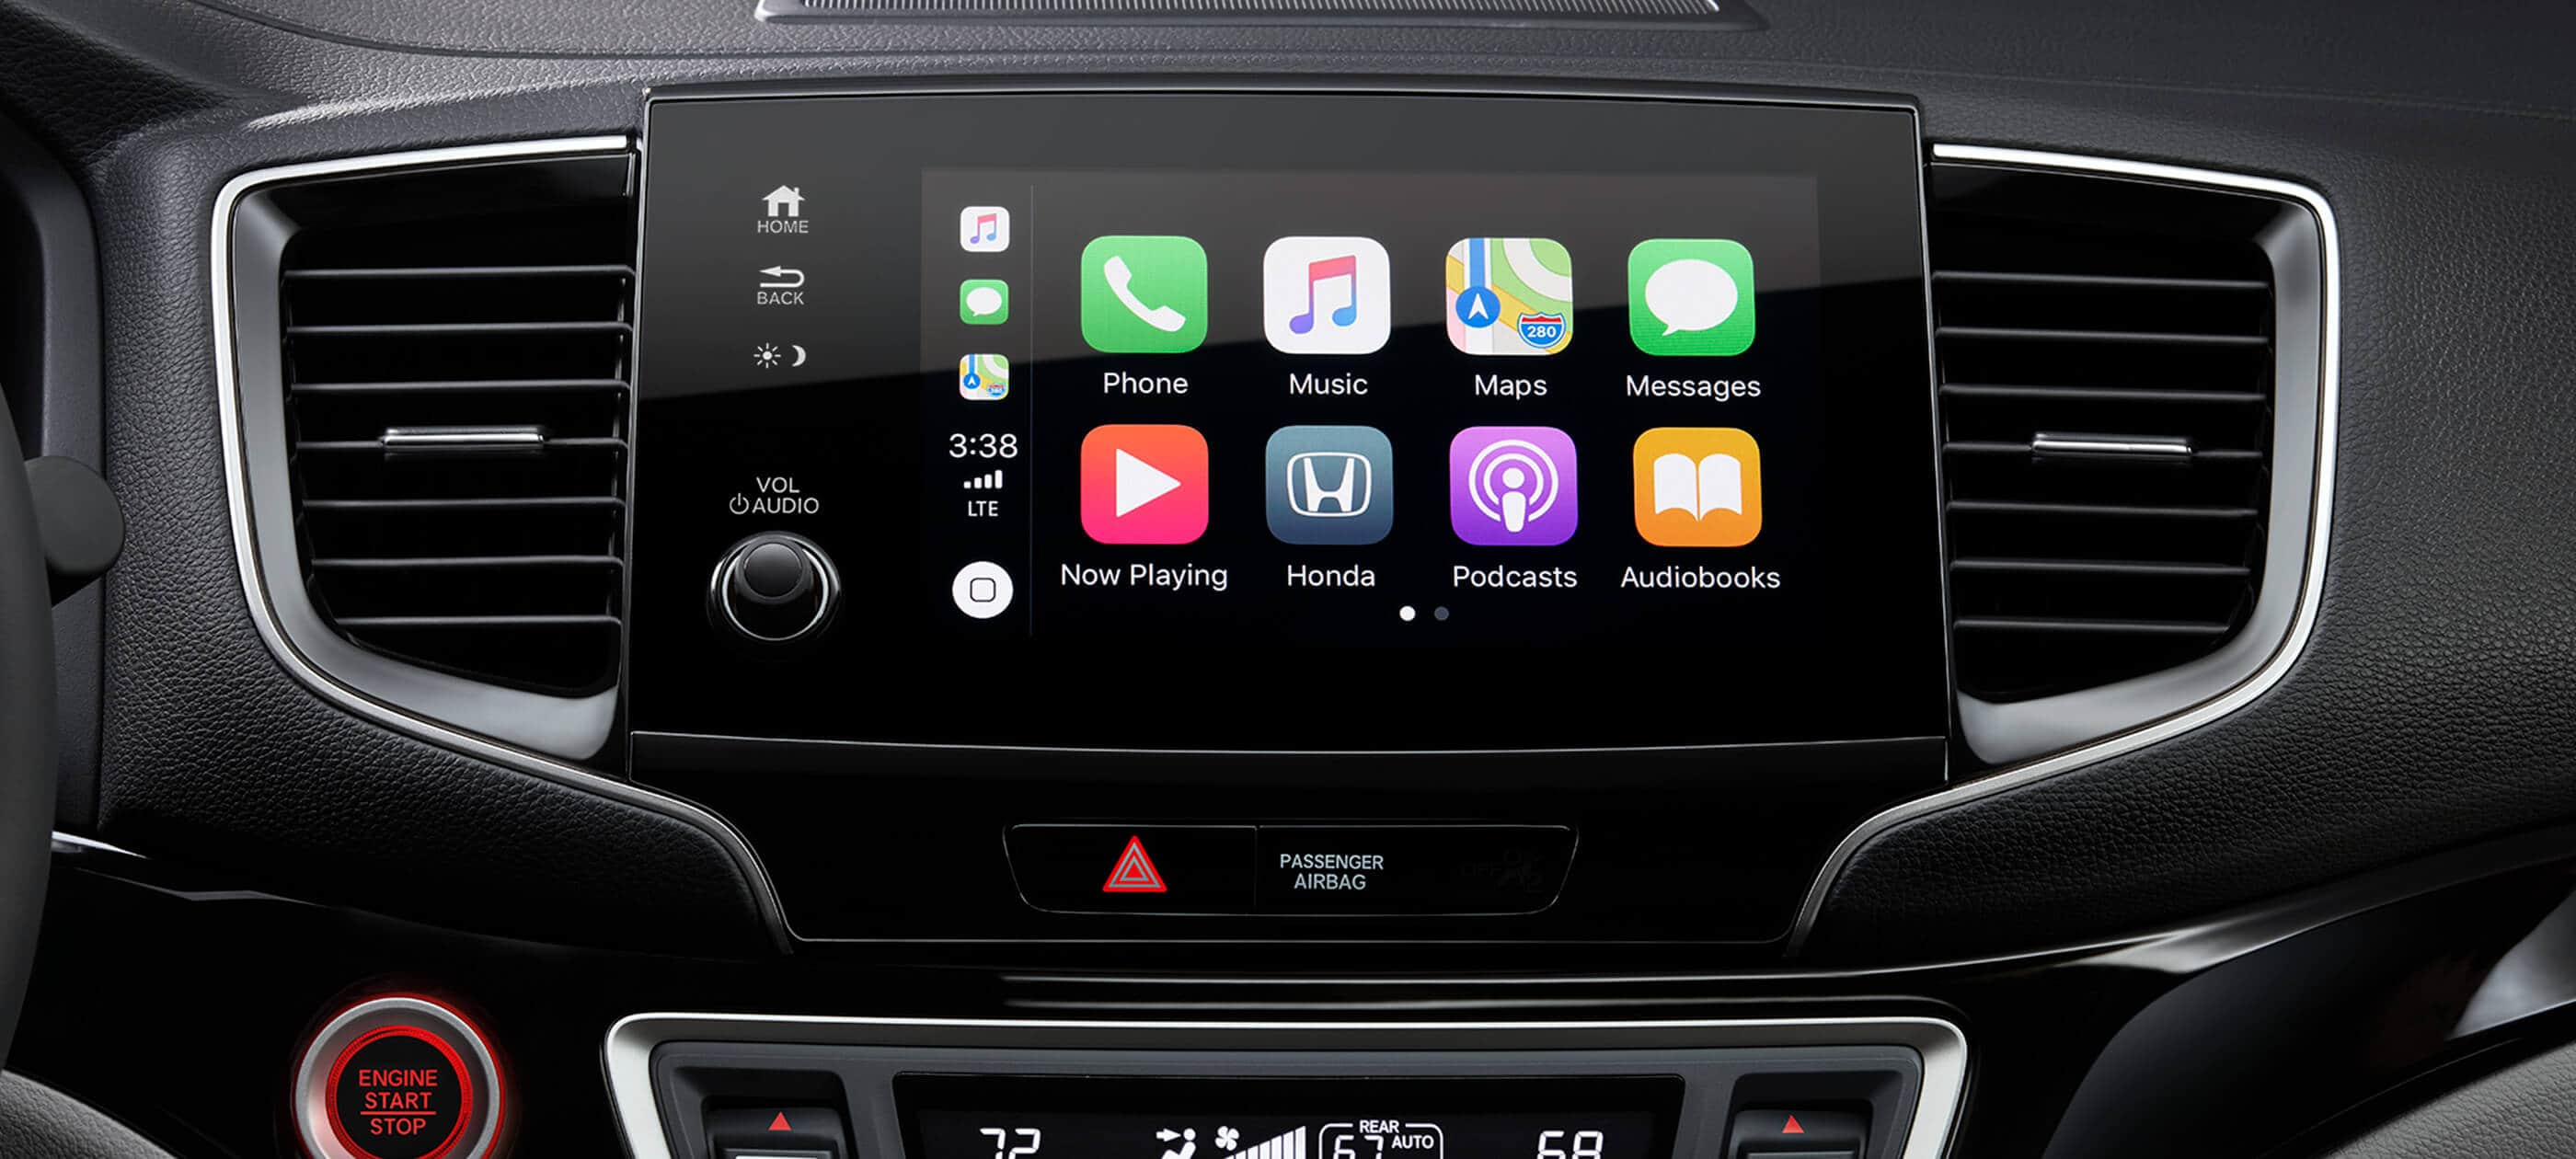 Available Apple CarPlay™ Integration